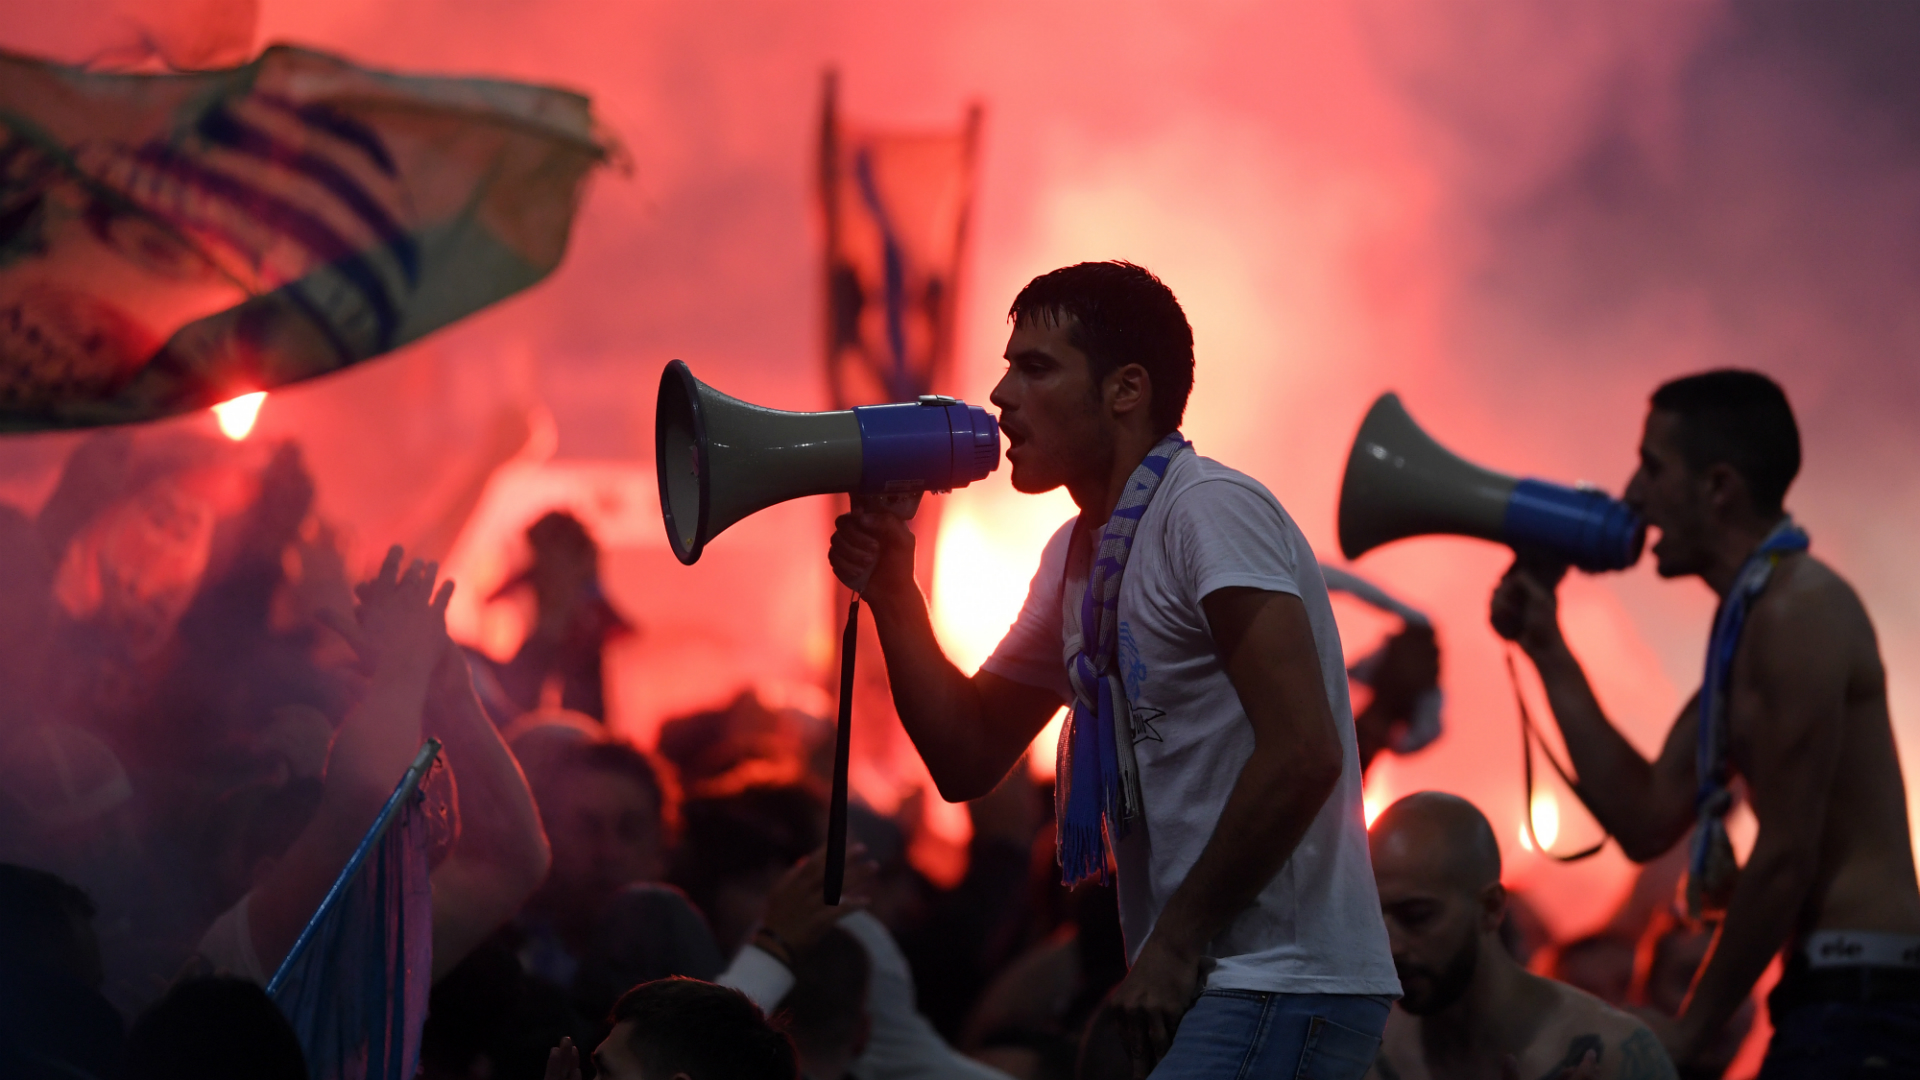 UEFA lifts threat to ban Marseille from Europa League